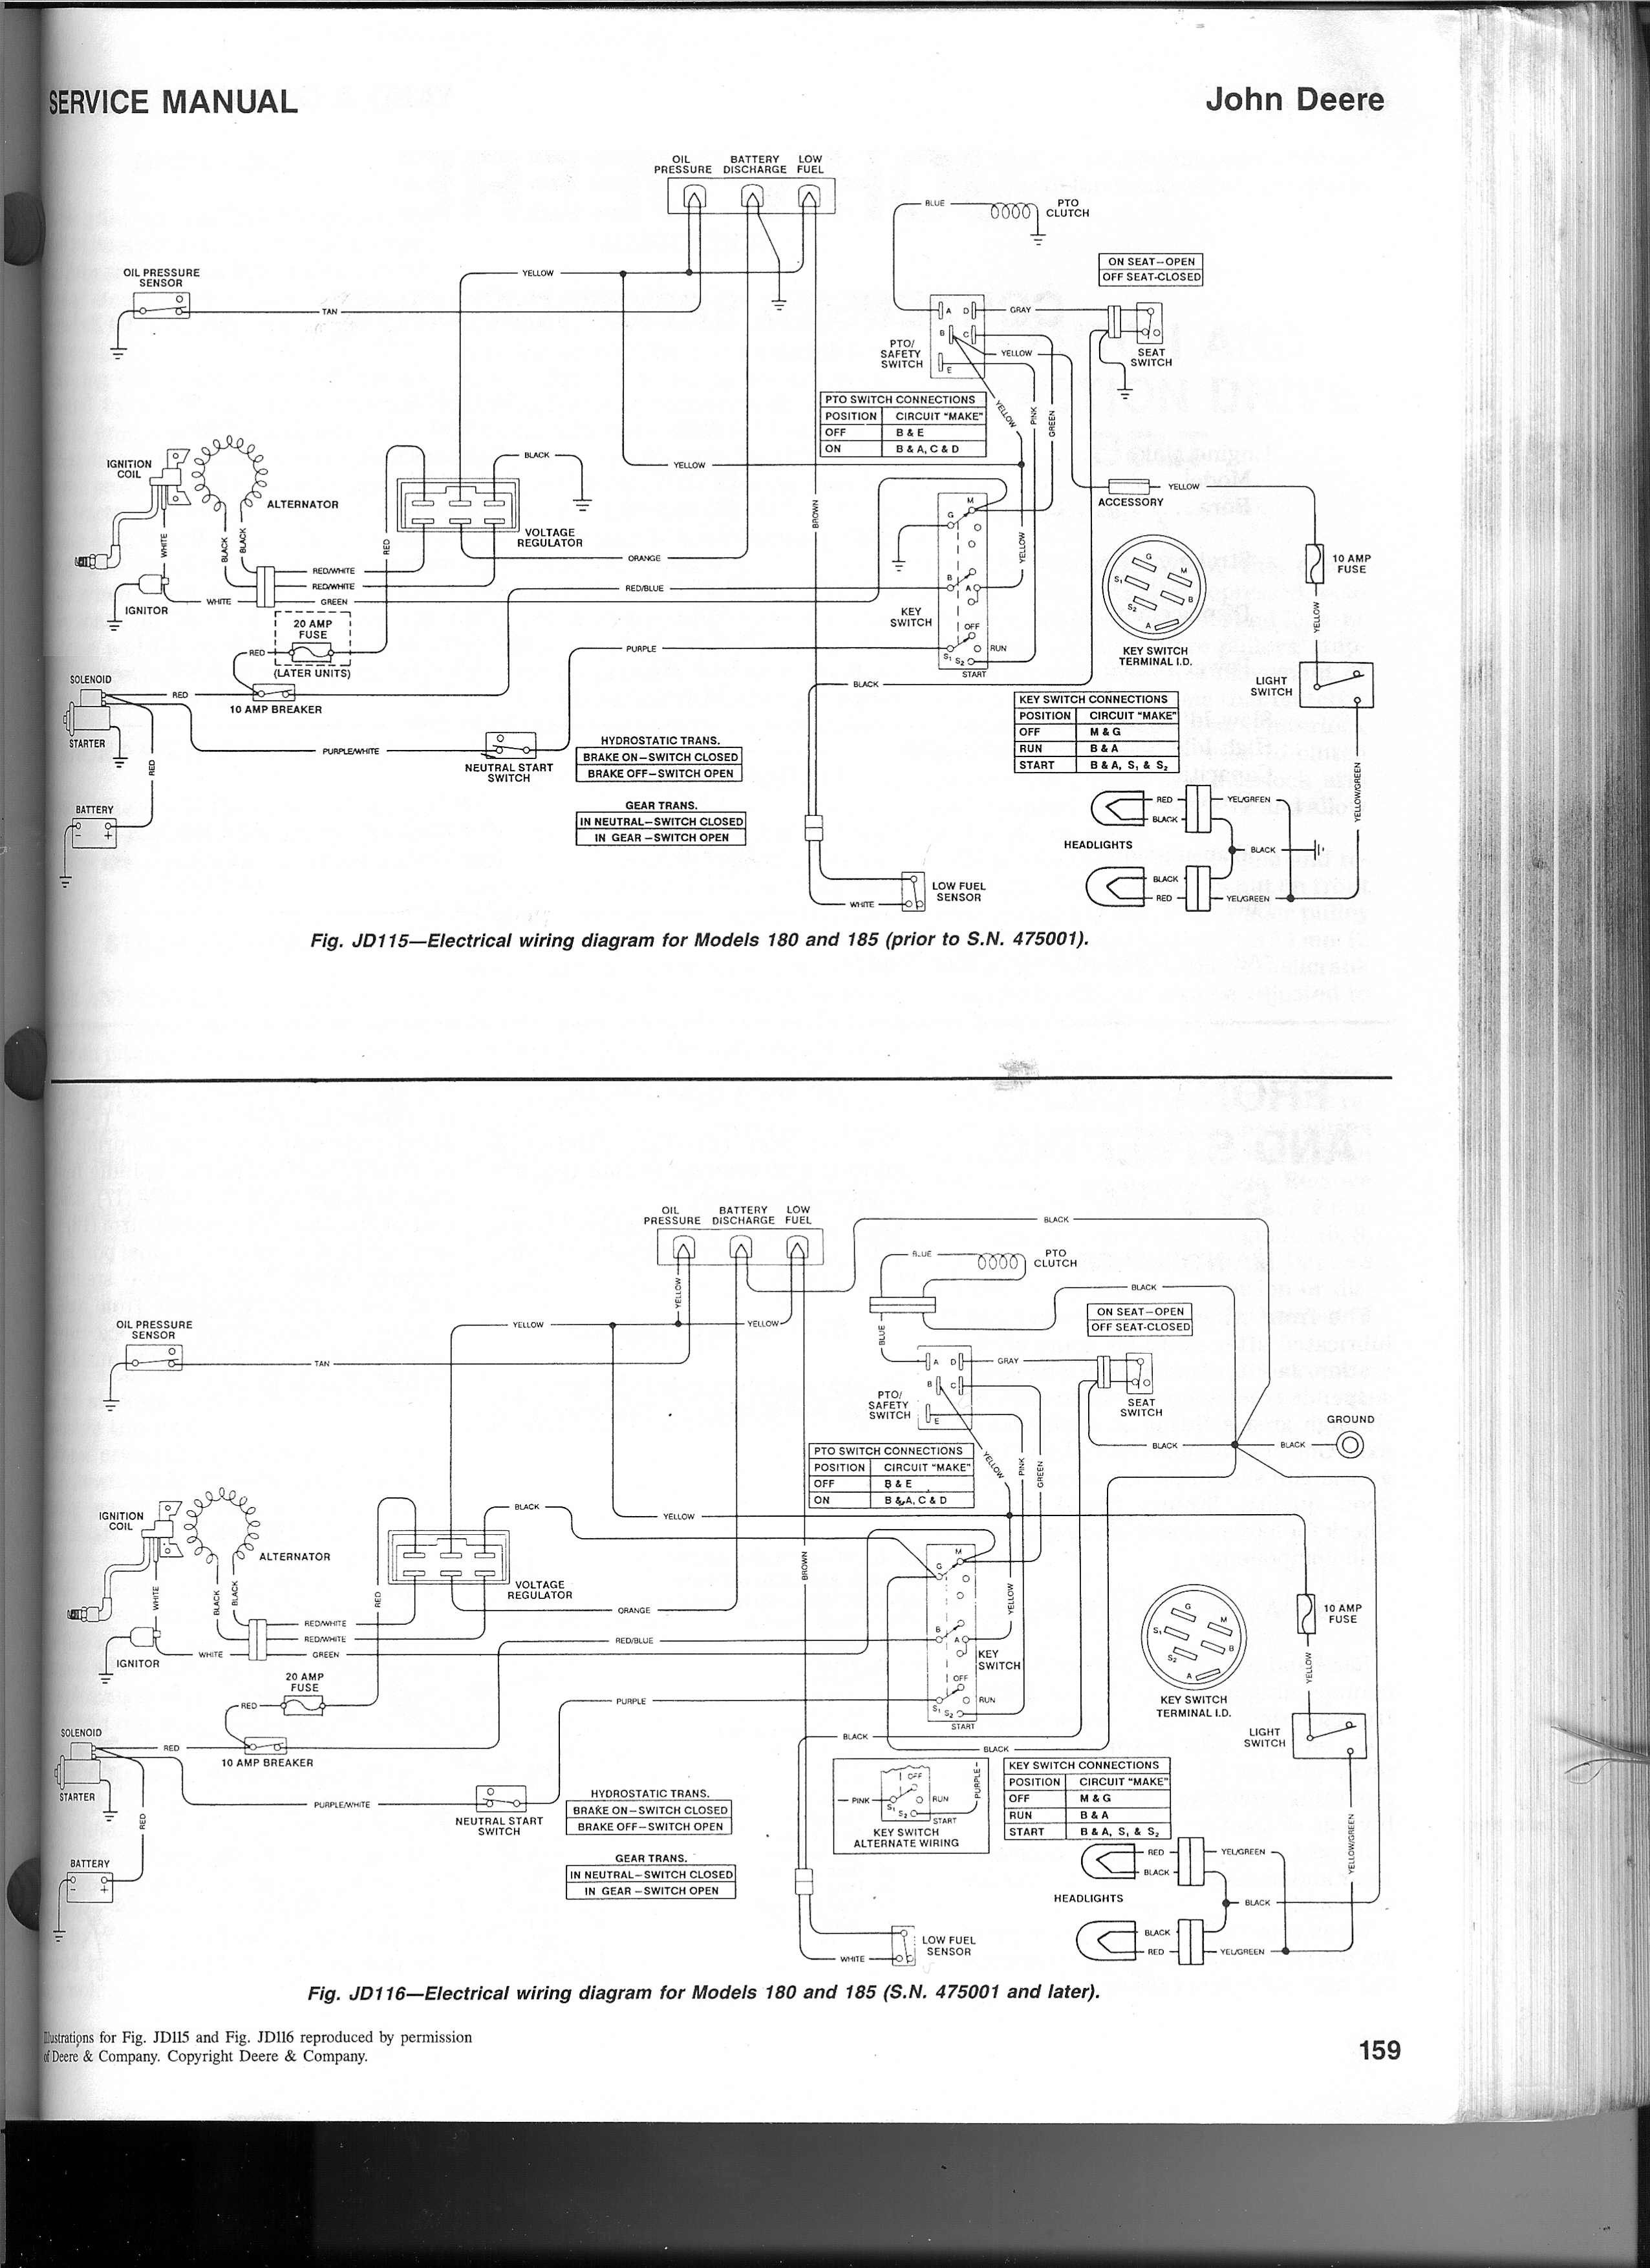 John Deere Lawn Tractor Wiring Diagram from static-resources.imageservice.cloud